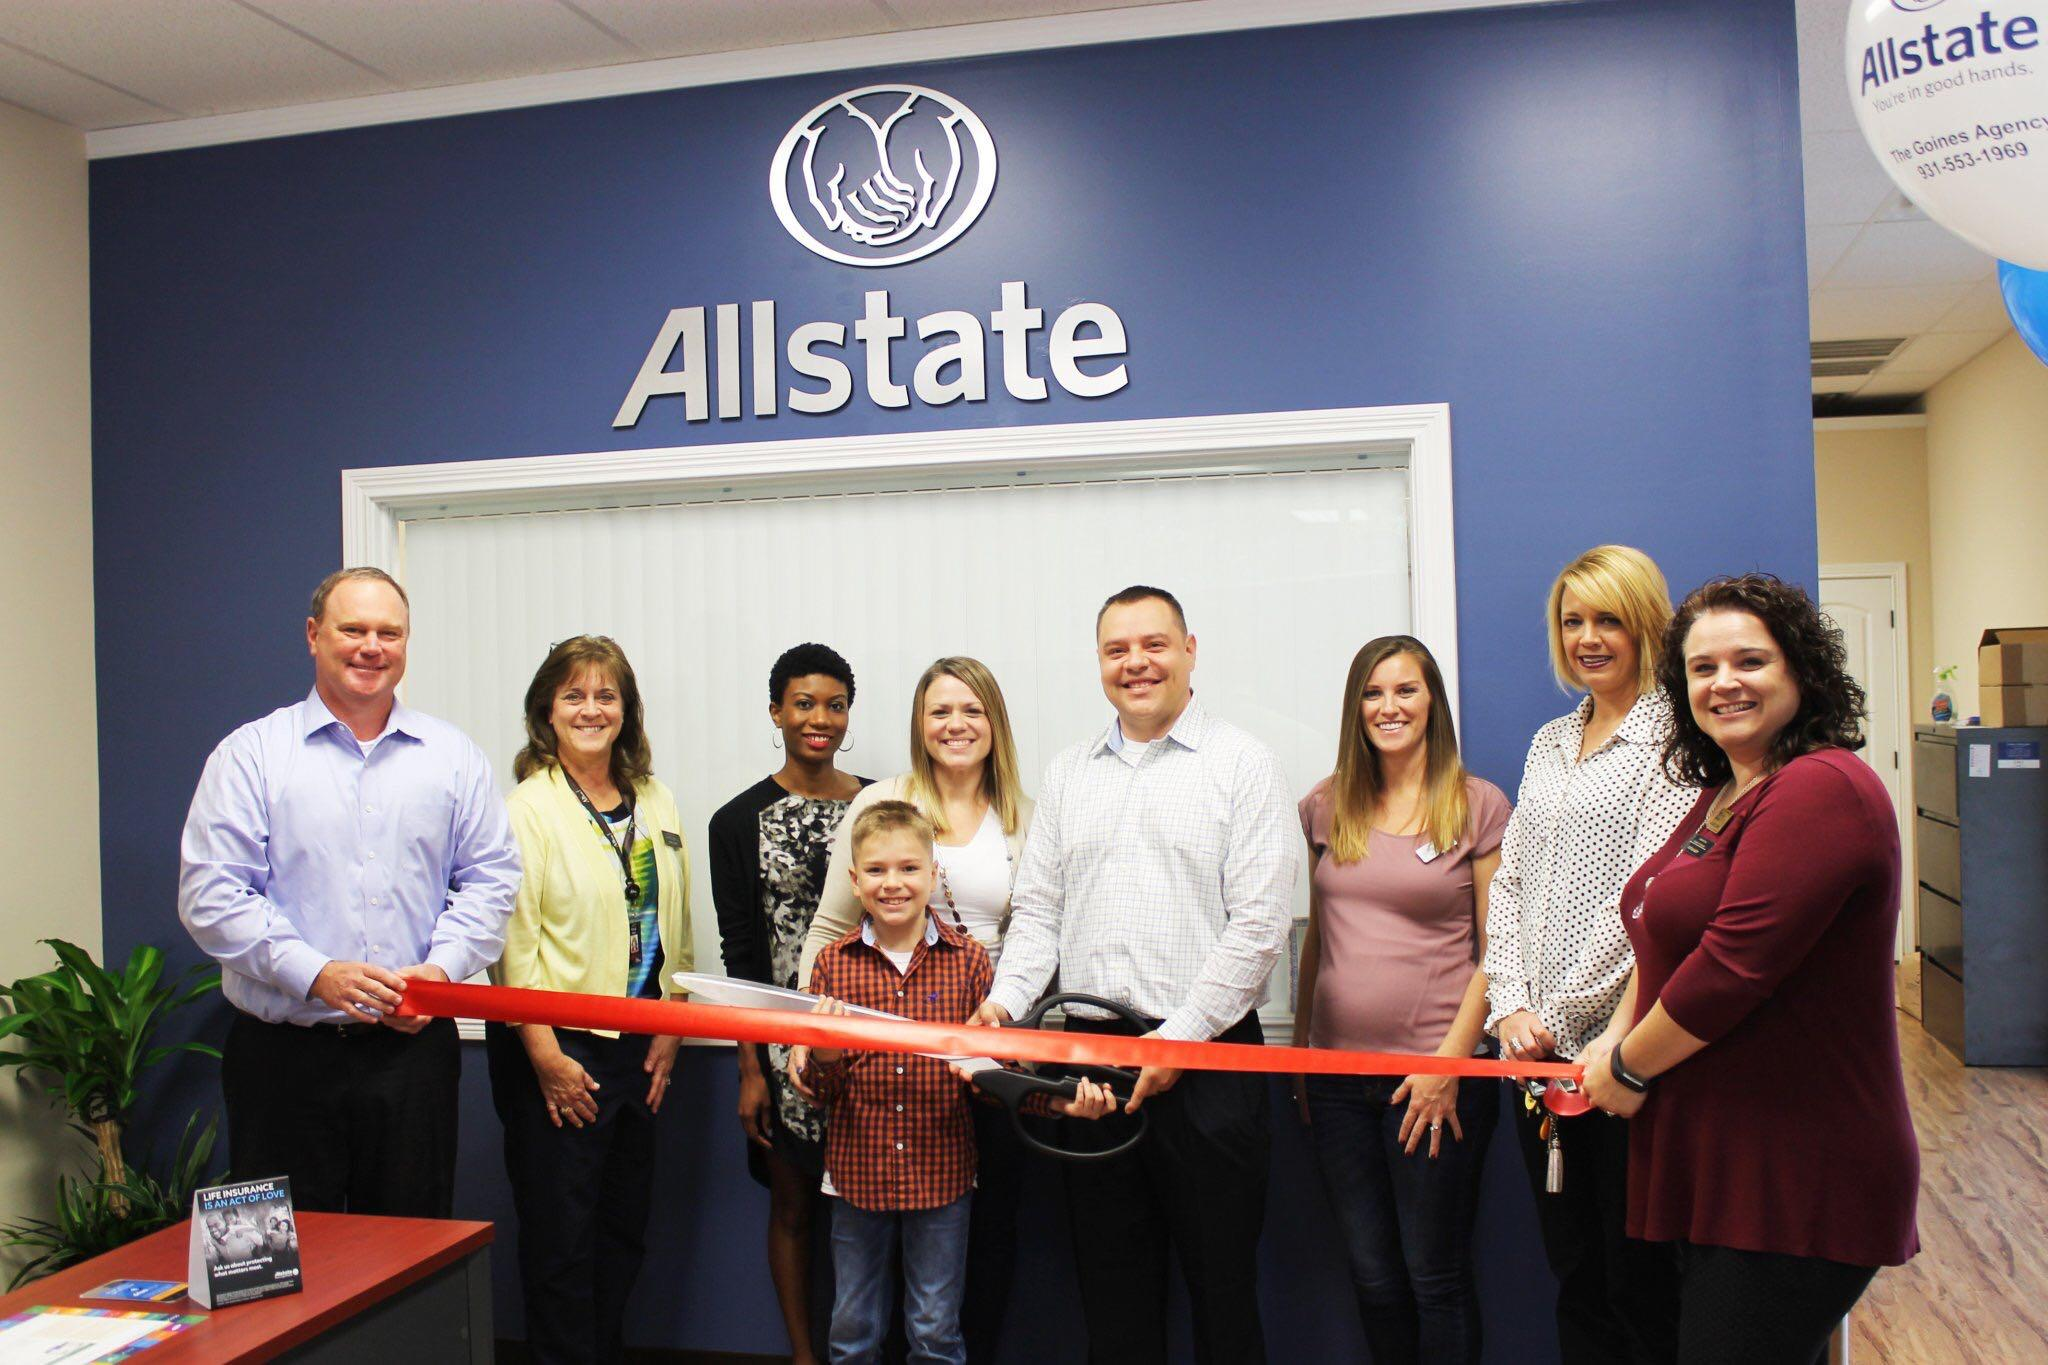 Alexis Goines: Allstate Insurance image 2